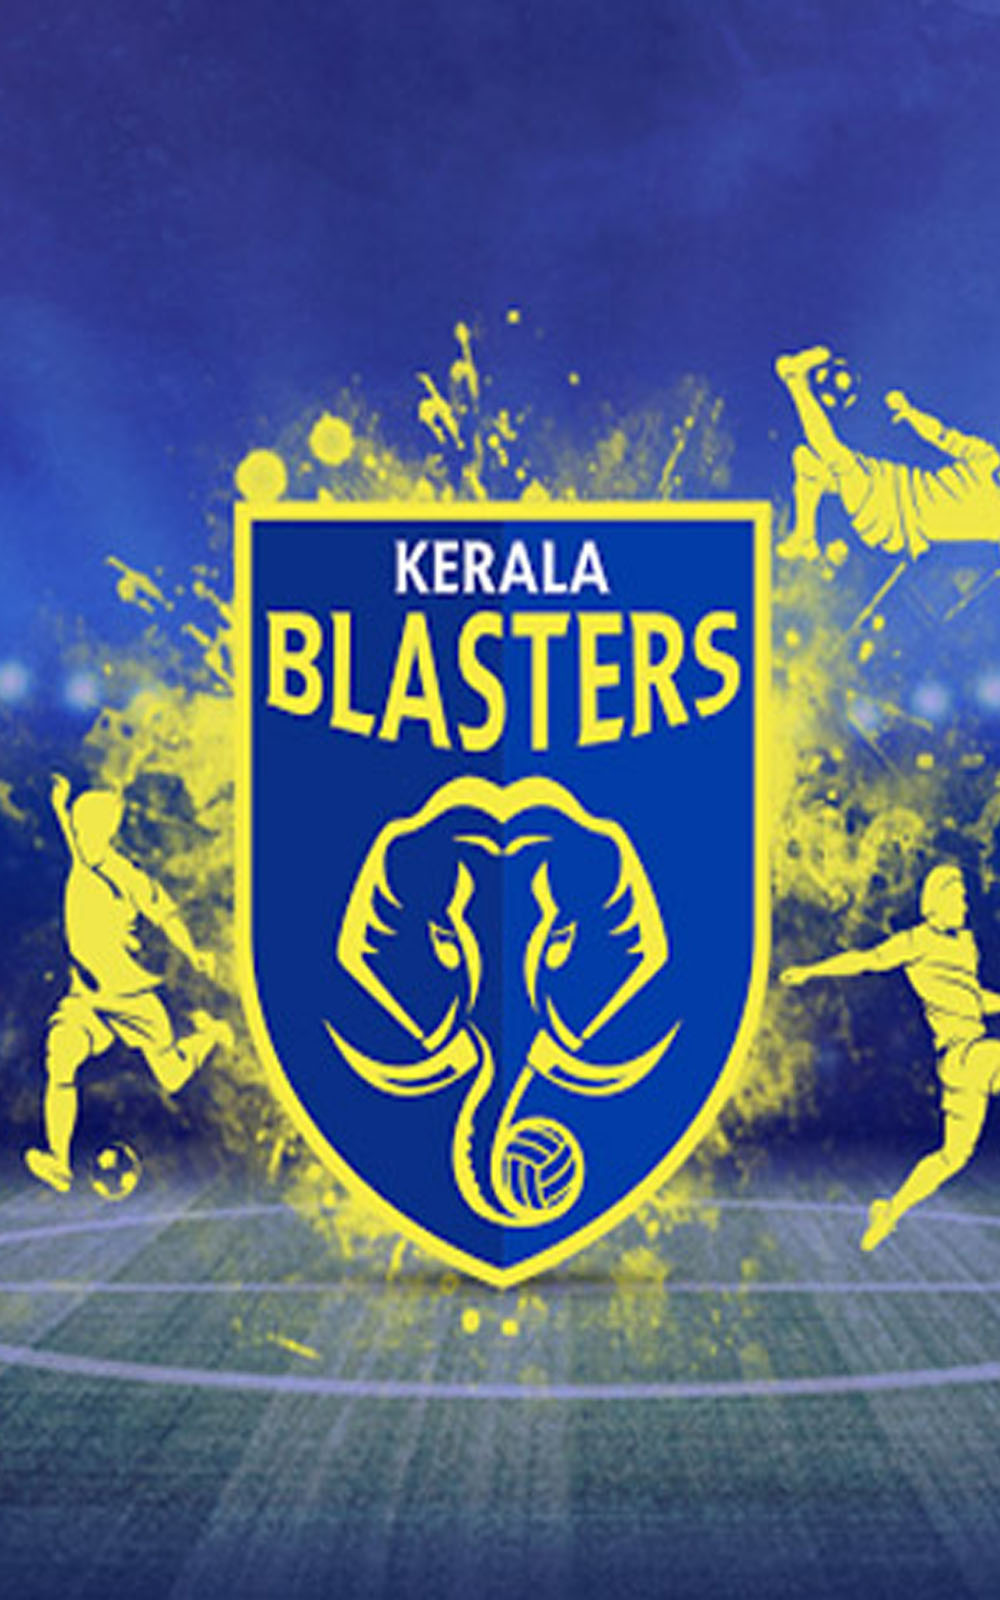 Free Car Wallpaper Download Mobile Kerala Blasters Download Free Hd Mobile Wallpapers